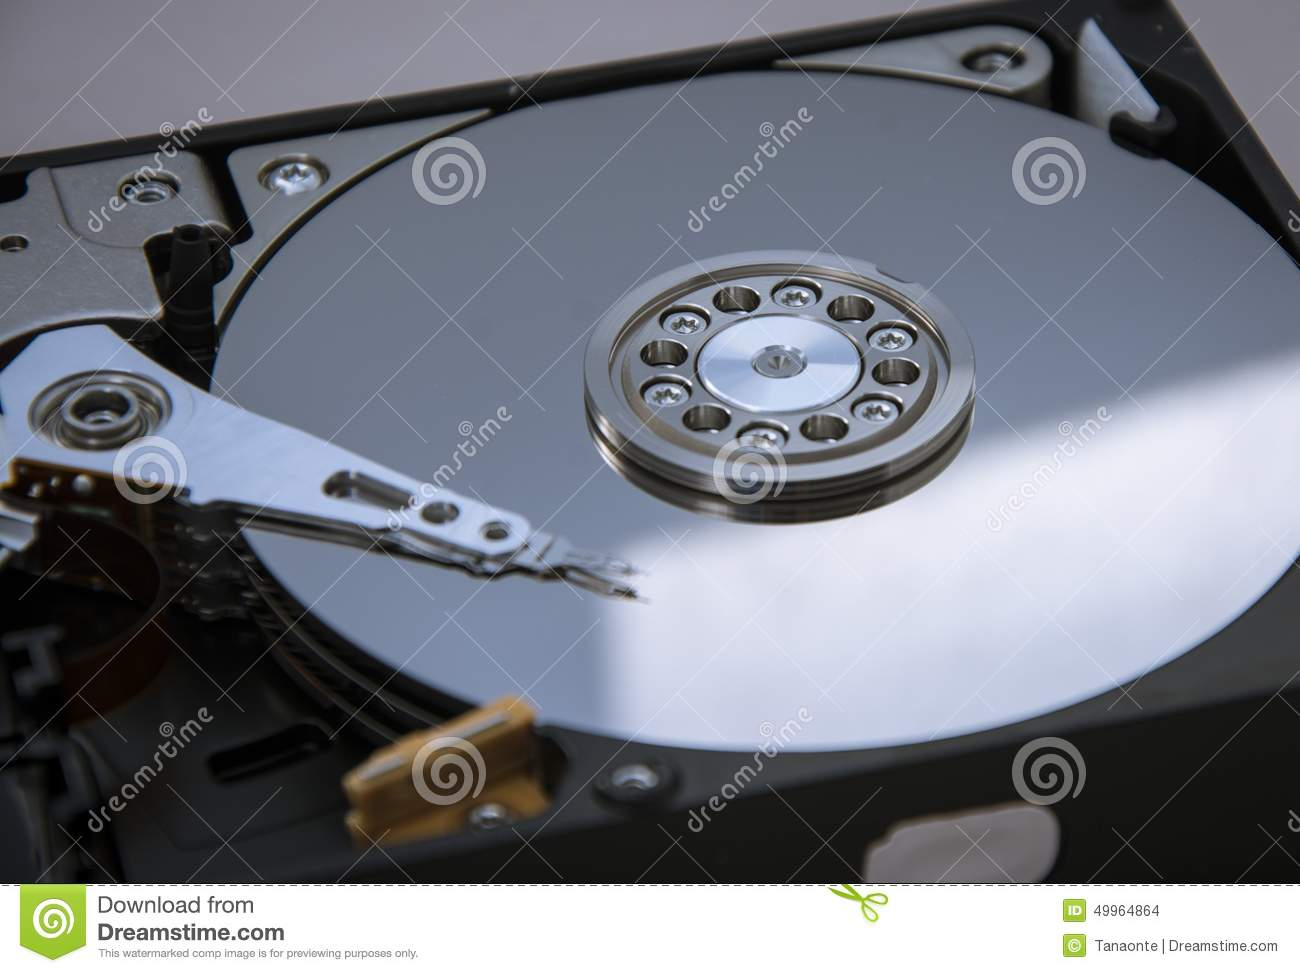 how to fix computer hard drive